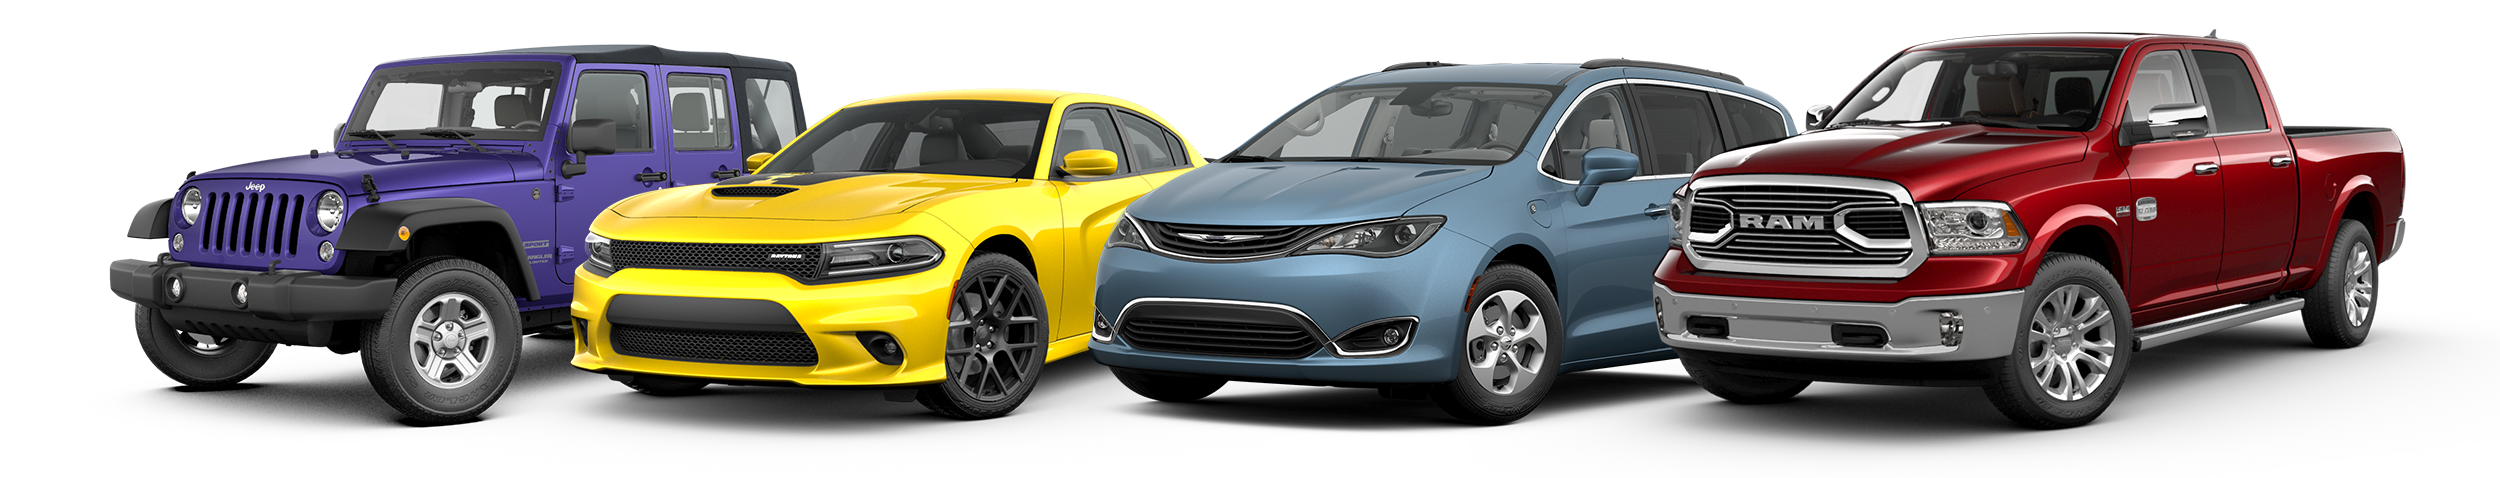 2018 chrysler vehicles. fine 2018 with vehicles from brands such as chrysler  inside 2018 chrysler